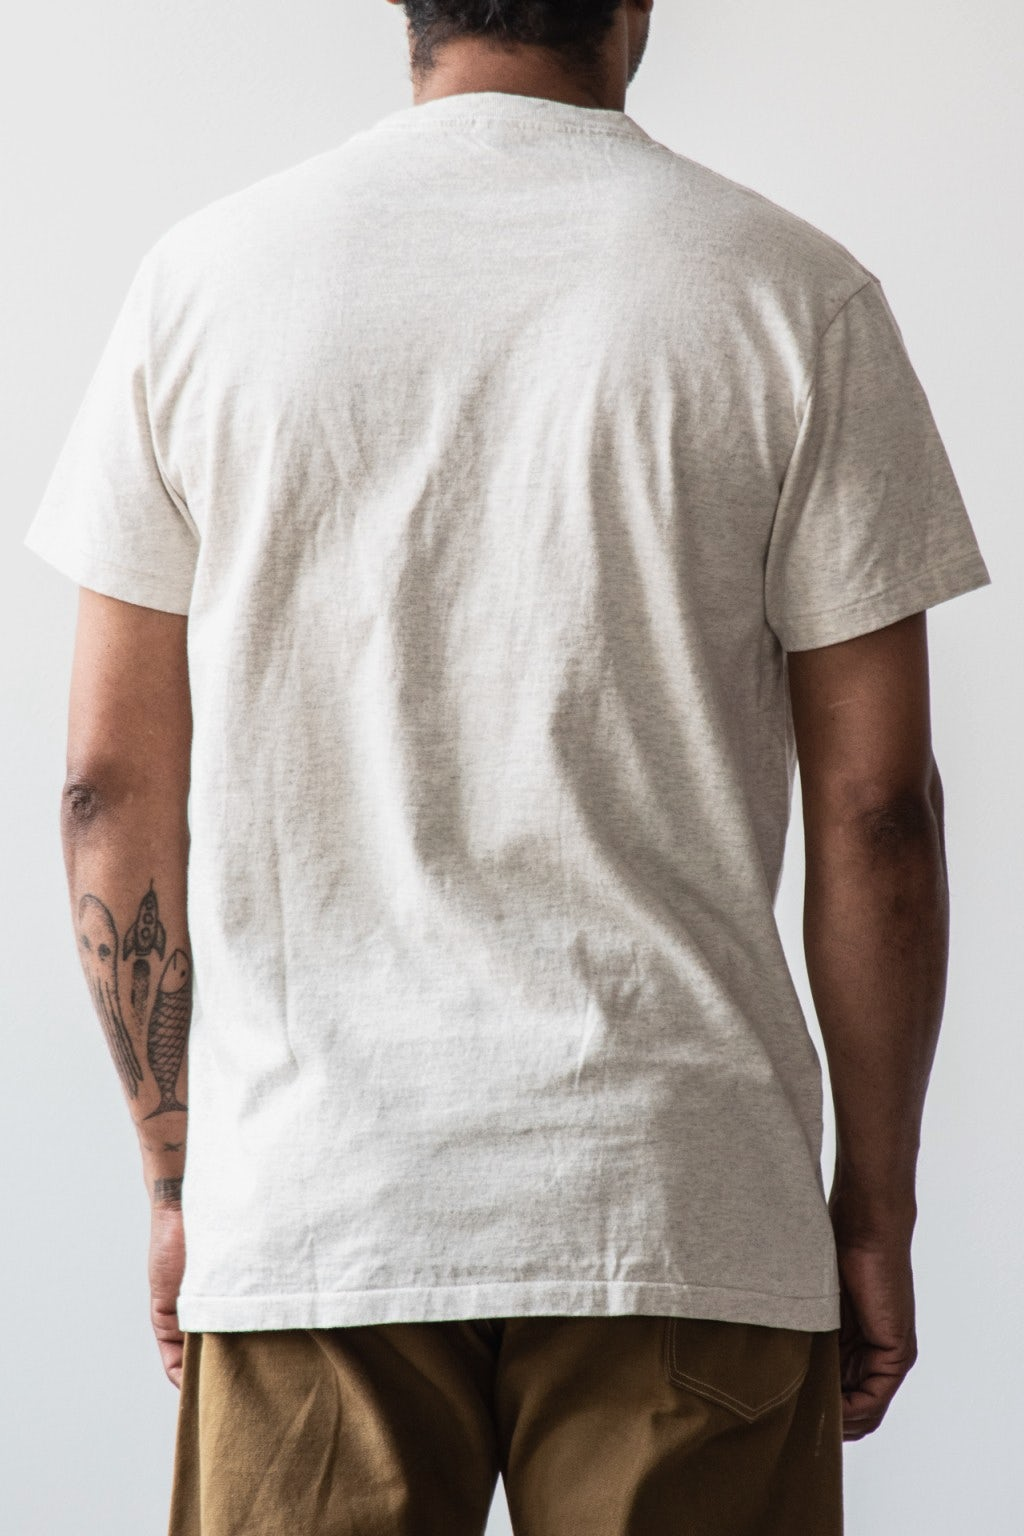 Velva Sheen Two Pack Pocket T-Shirts Oatmeal